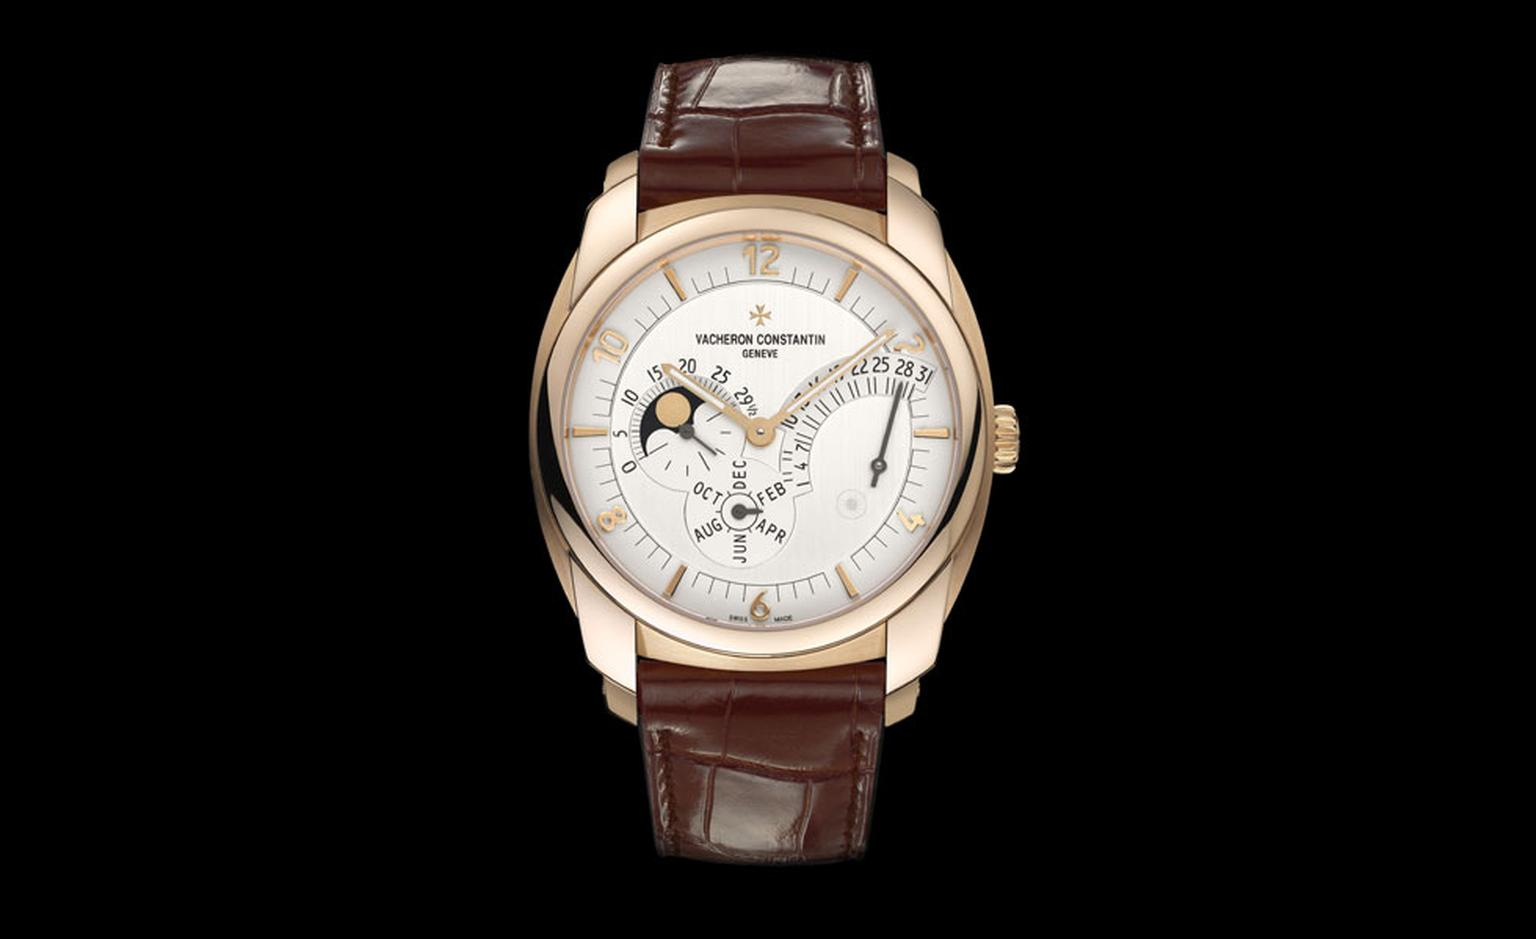 Vacheron Constantin Quai De l'Ile retrograde annual calender for 2011